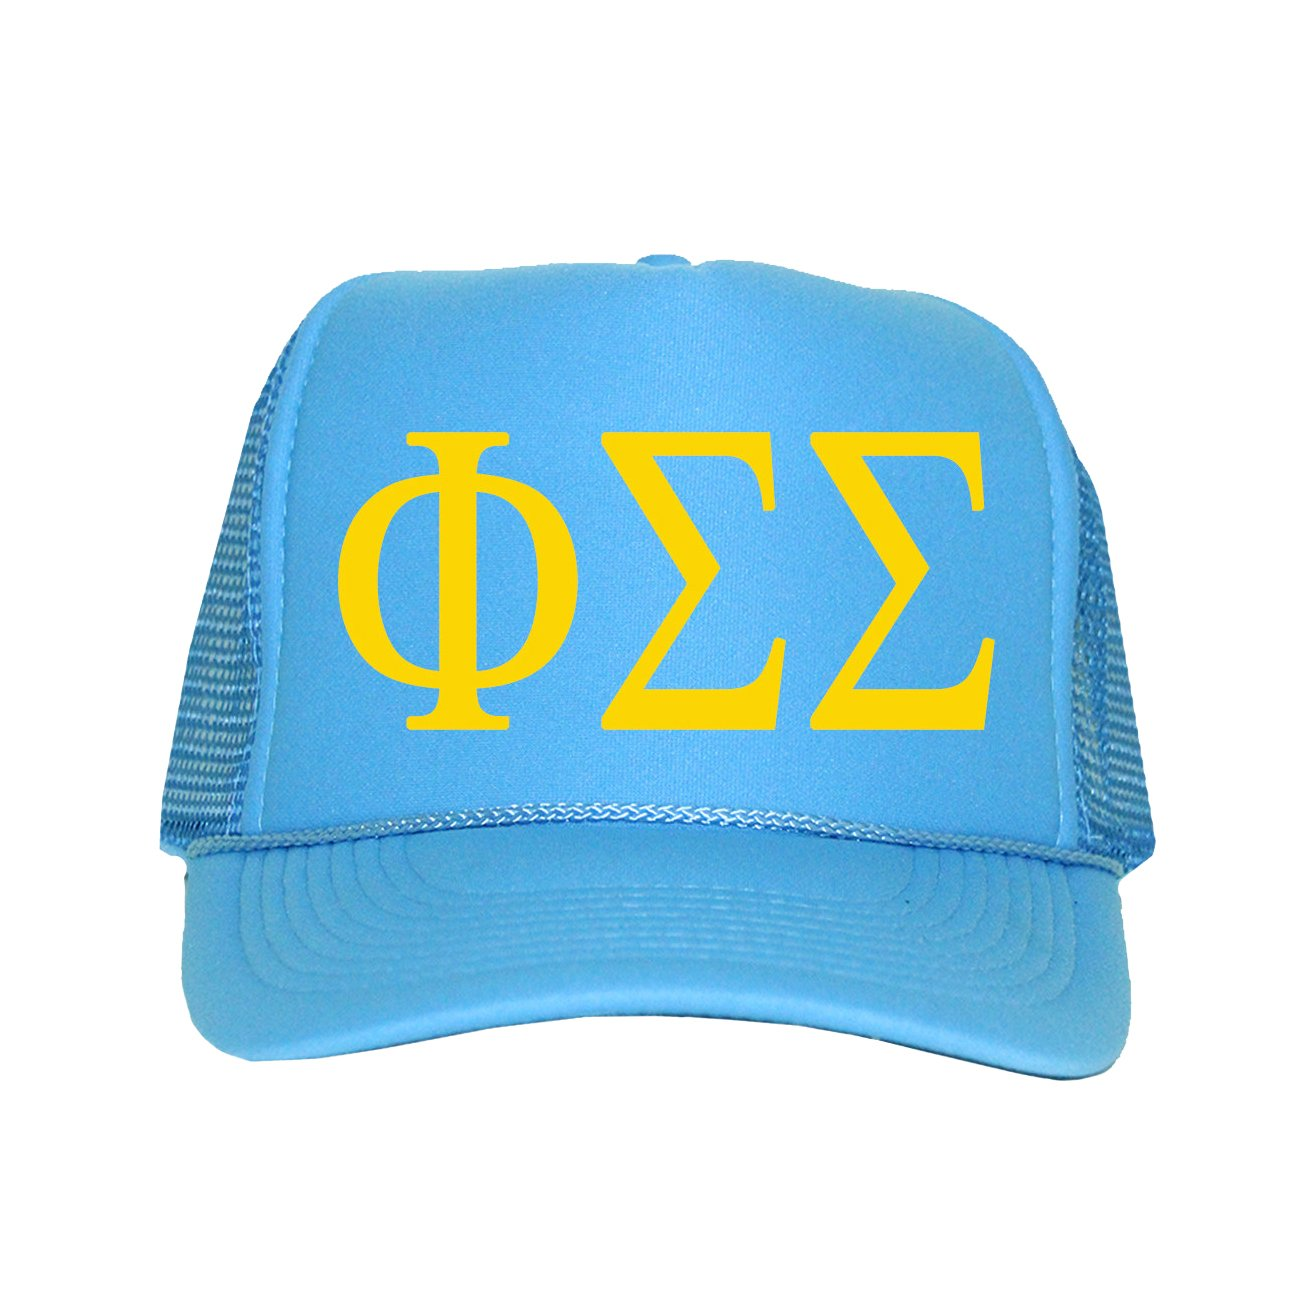 Phi Sigma Sigma Hat - Columbia Blue at Amazon Women s Clothing store  438e08bbd89